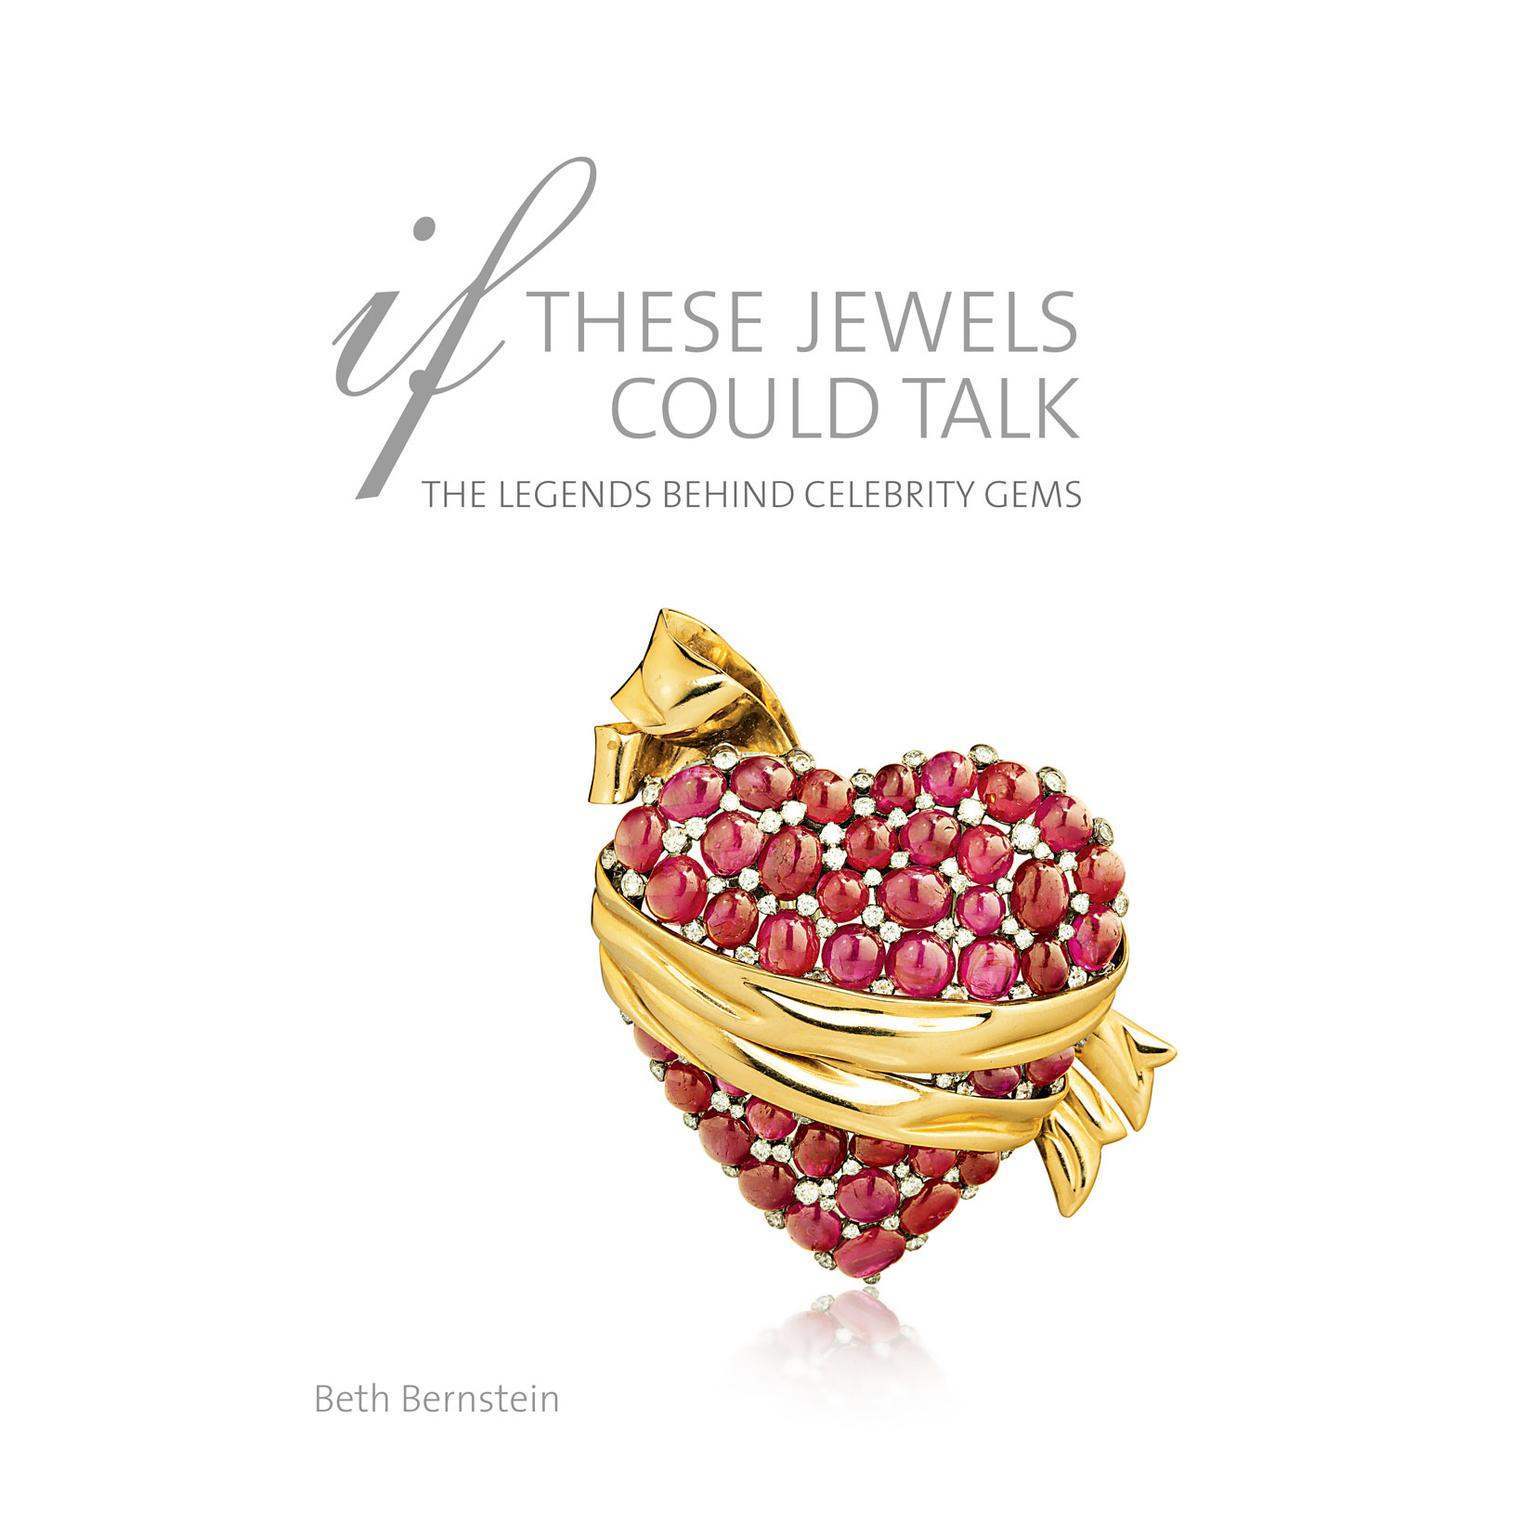 Beth Bernstein: If These Jewels Could Talk